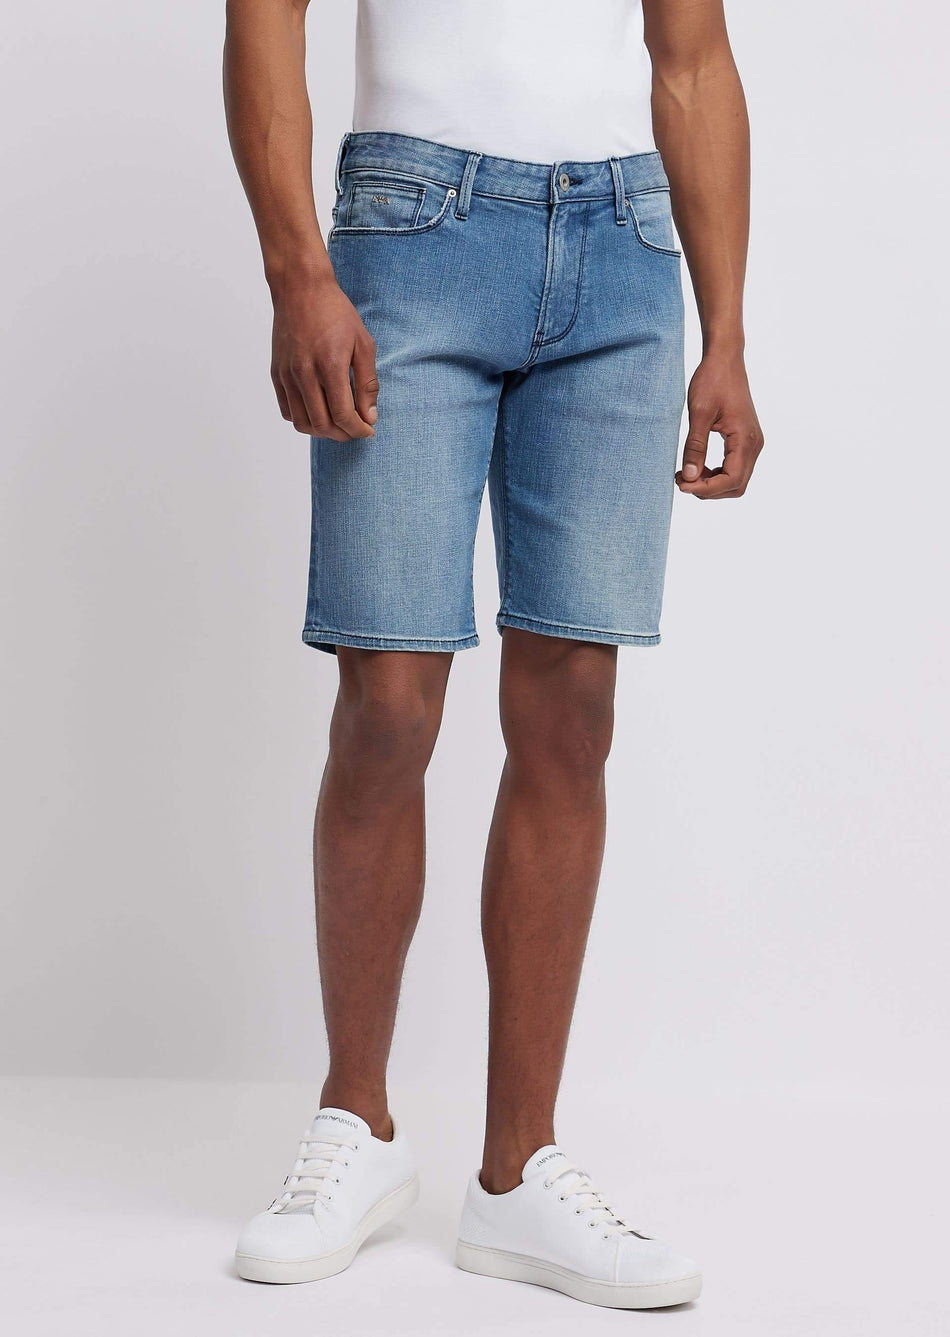 shorts in denim comfort right hand 12 oz EMPORIO ARMANI - Vittorio Citro Boutique